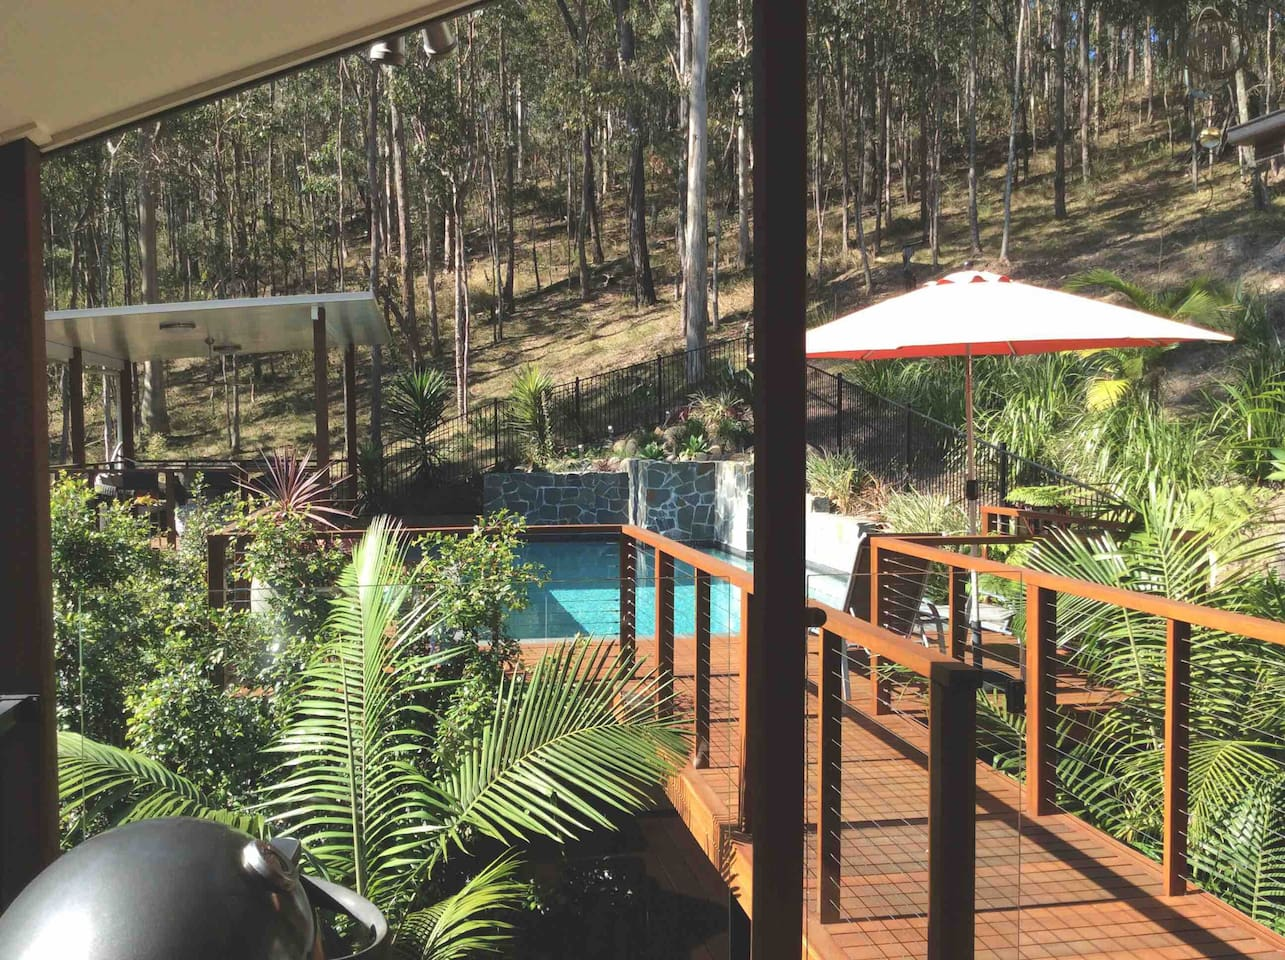 Outdoor pool area and bushland